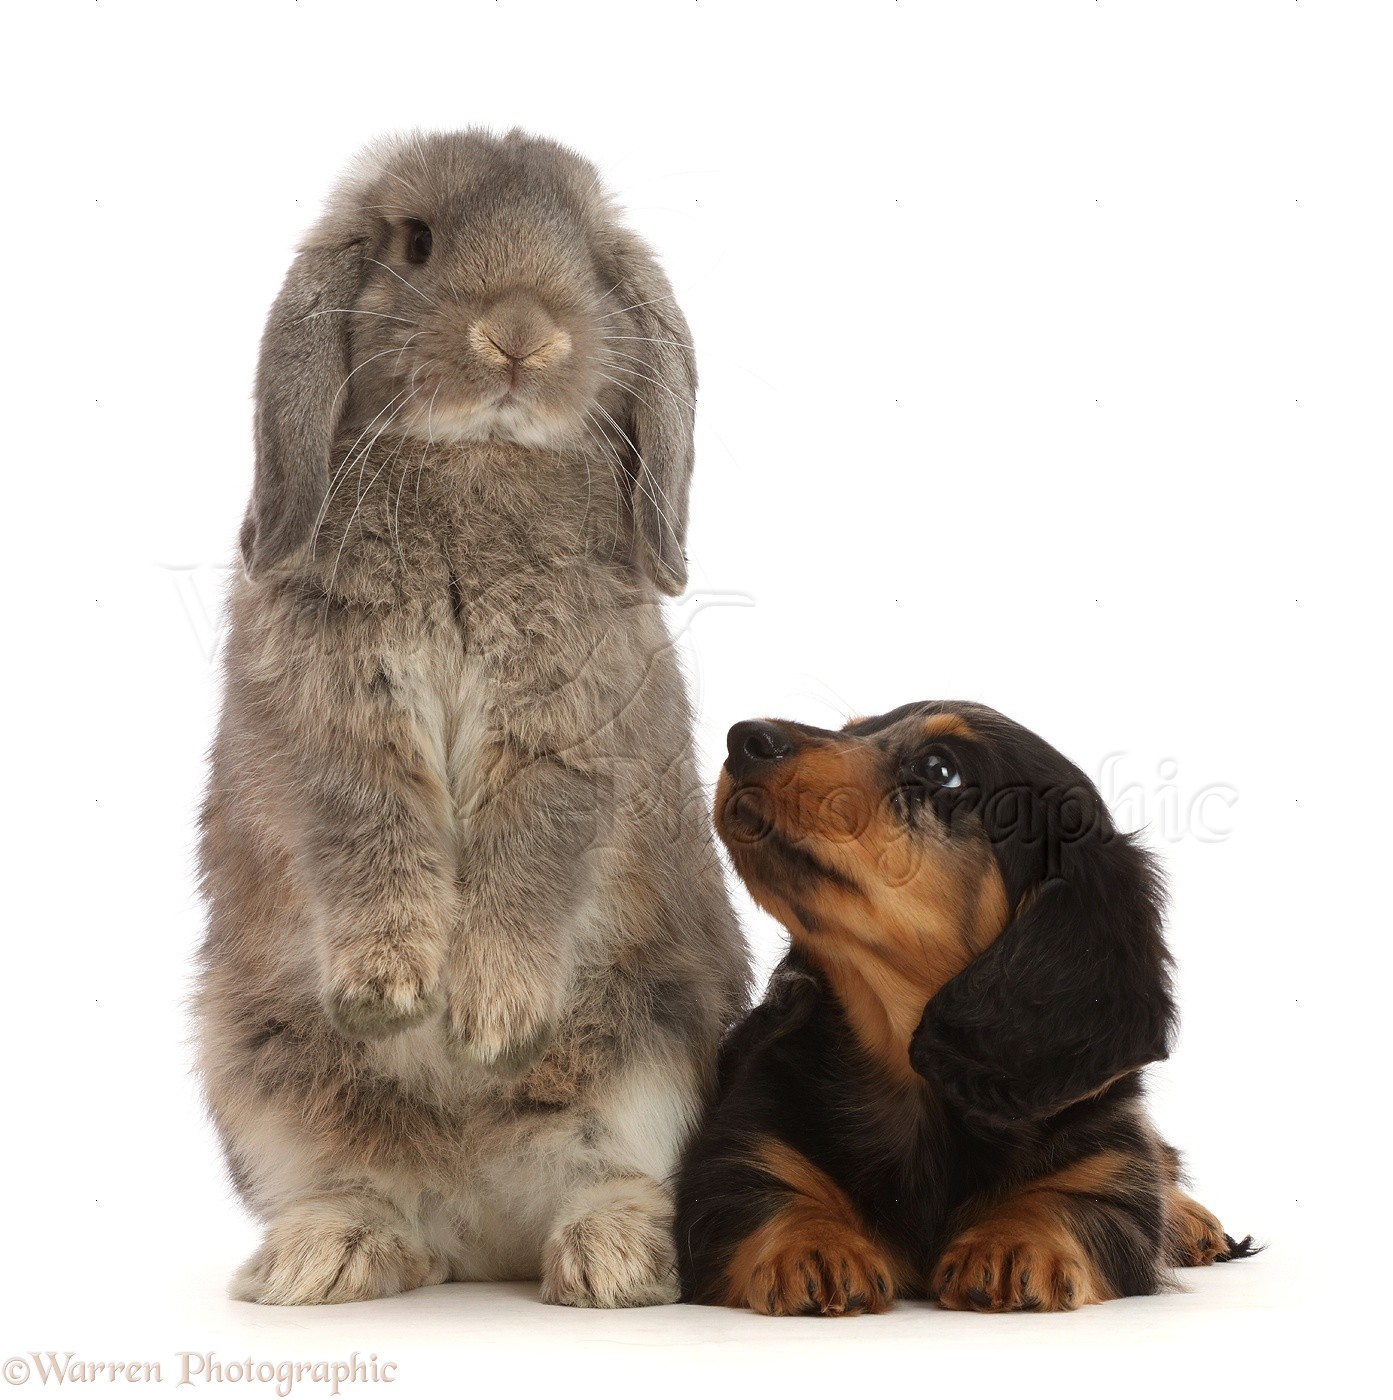 Pets Dachshund Puppy Looking Up At Grey Lop Bunny Photo Wp48001